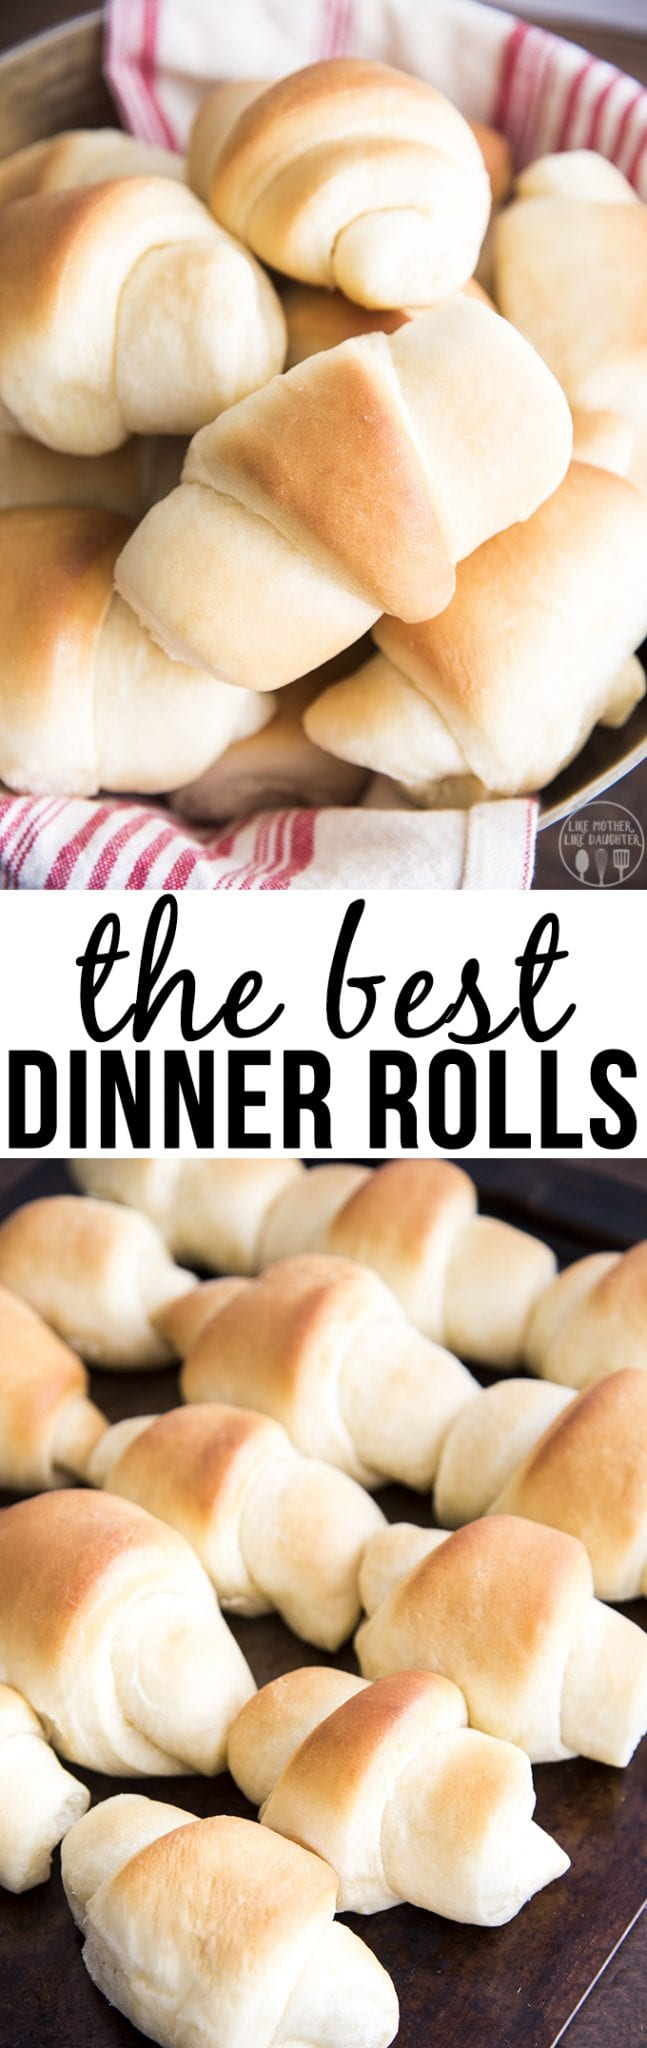 These homemade dinner rolls are the best ever! They are soft and fluffy, and your whole family will love them!